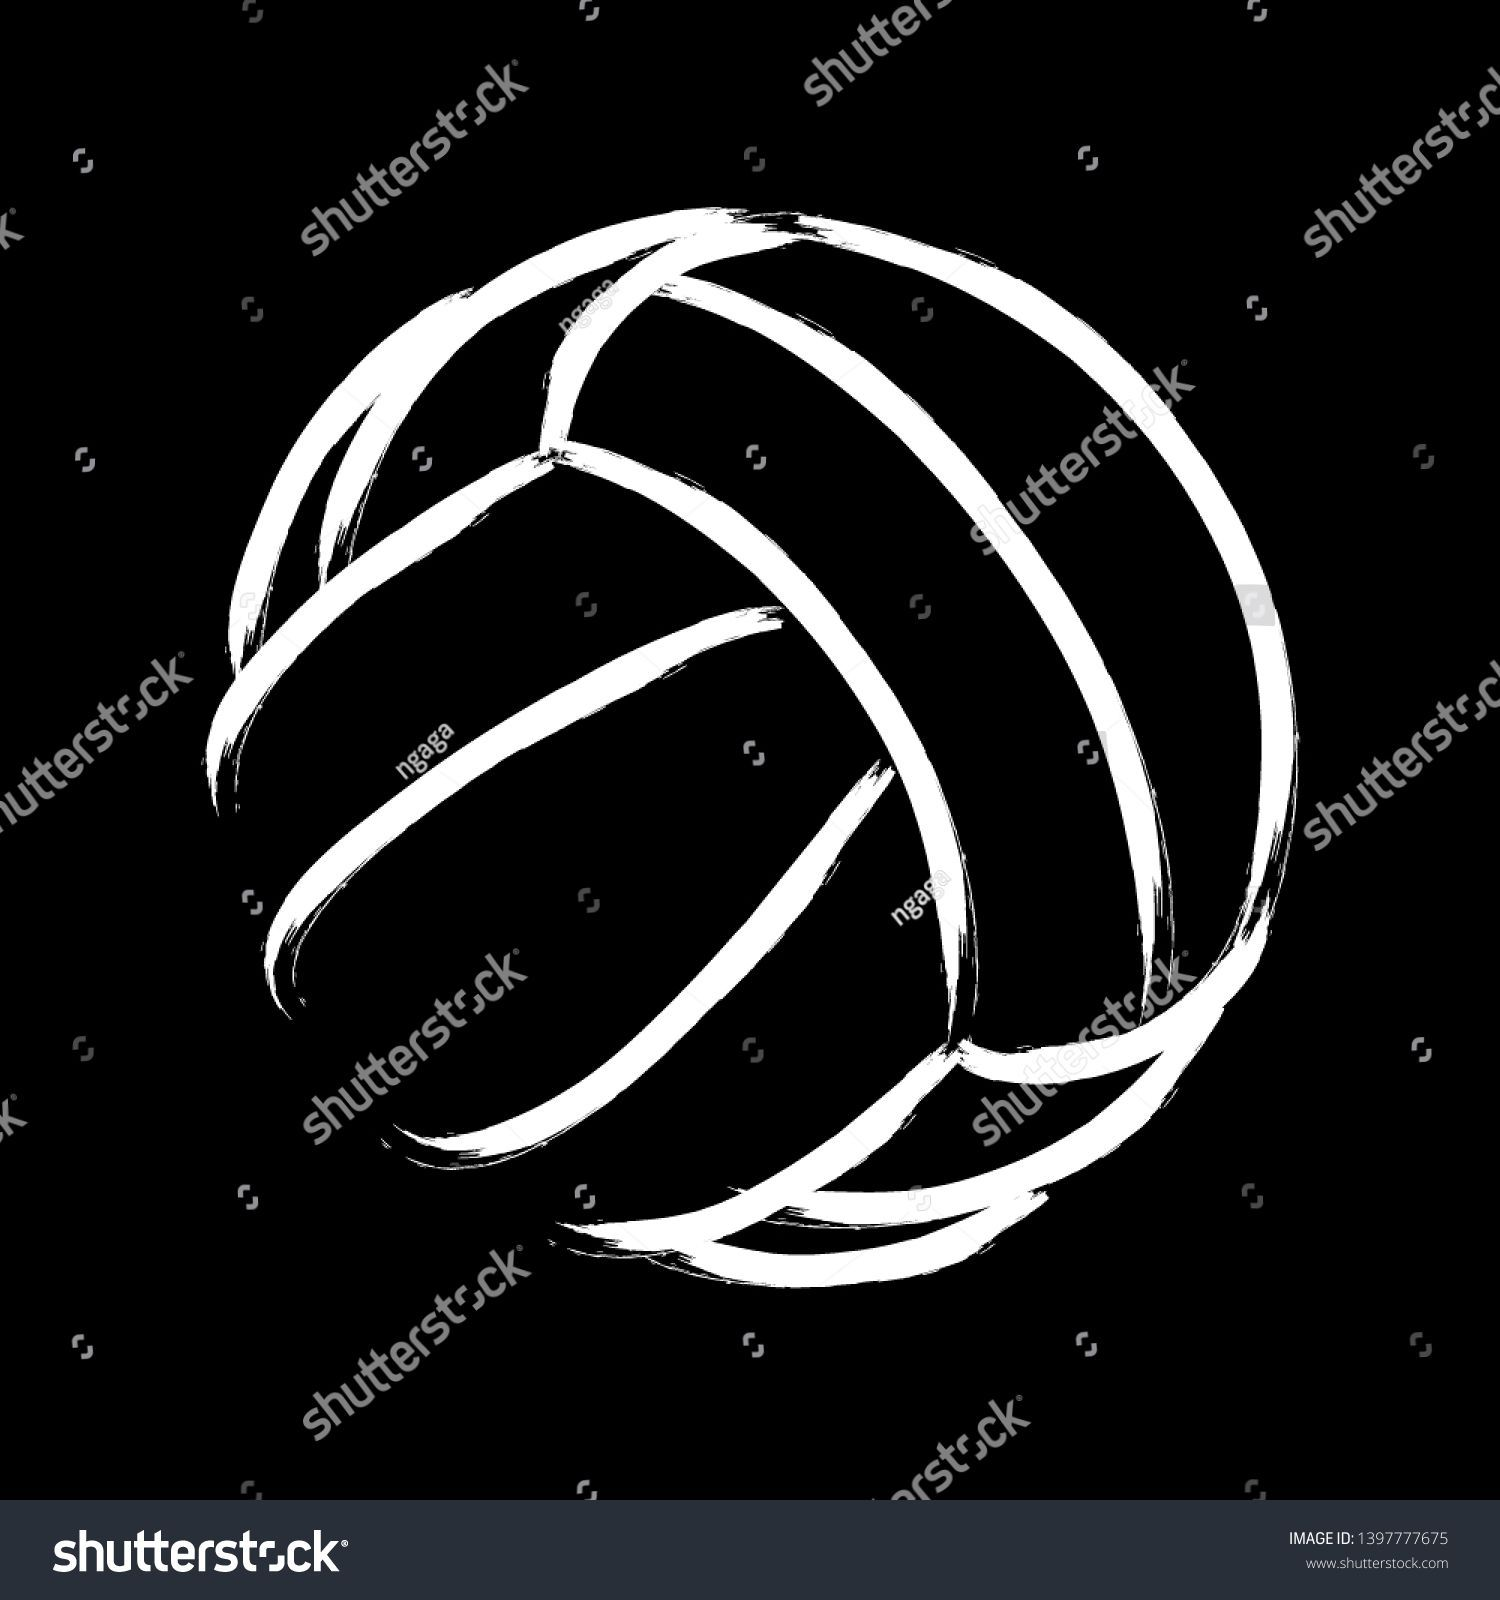 Stylized Illustration Hand Drawing Volleyball Background Stock Vector Royalty Free 1397777675 In 2020 How To Draw Hands Stylized Volleyball Backgrounds